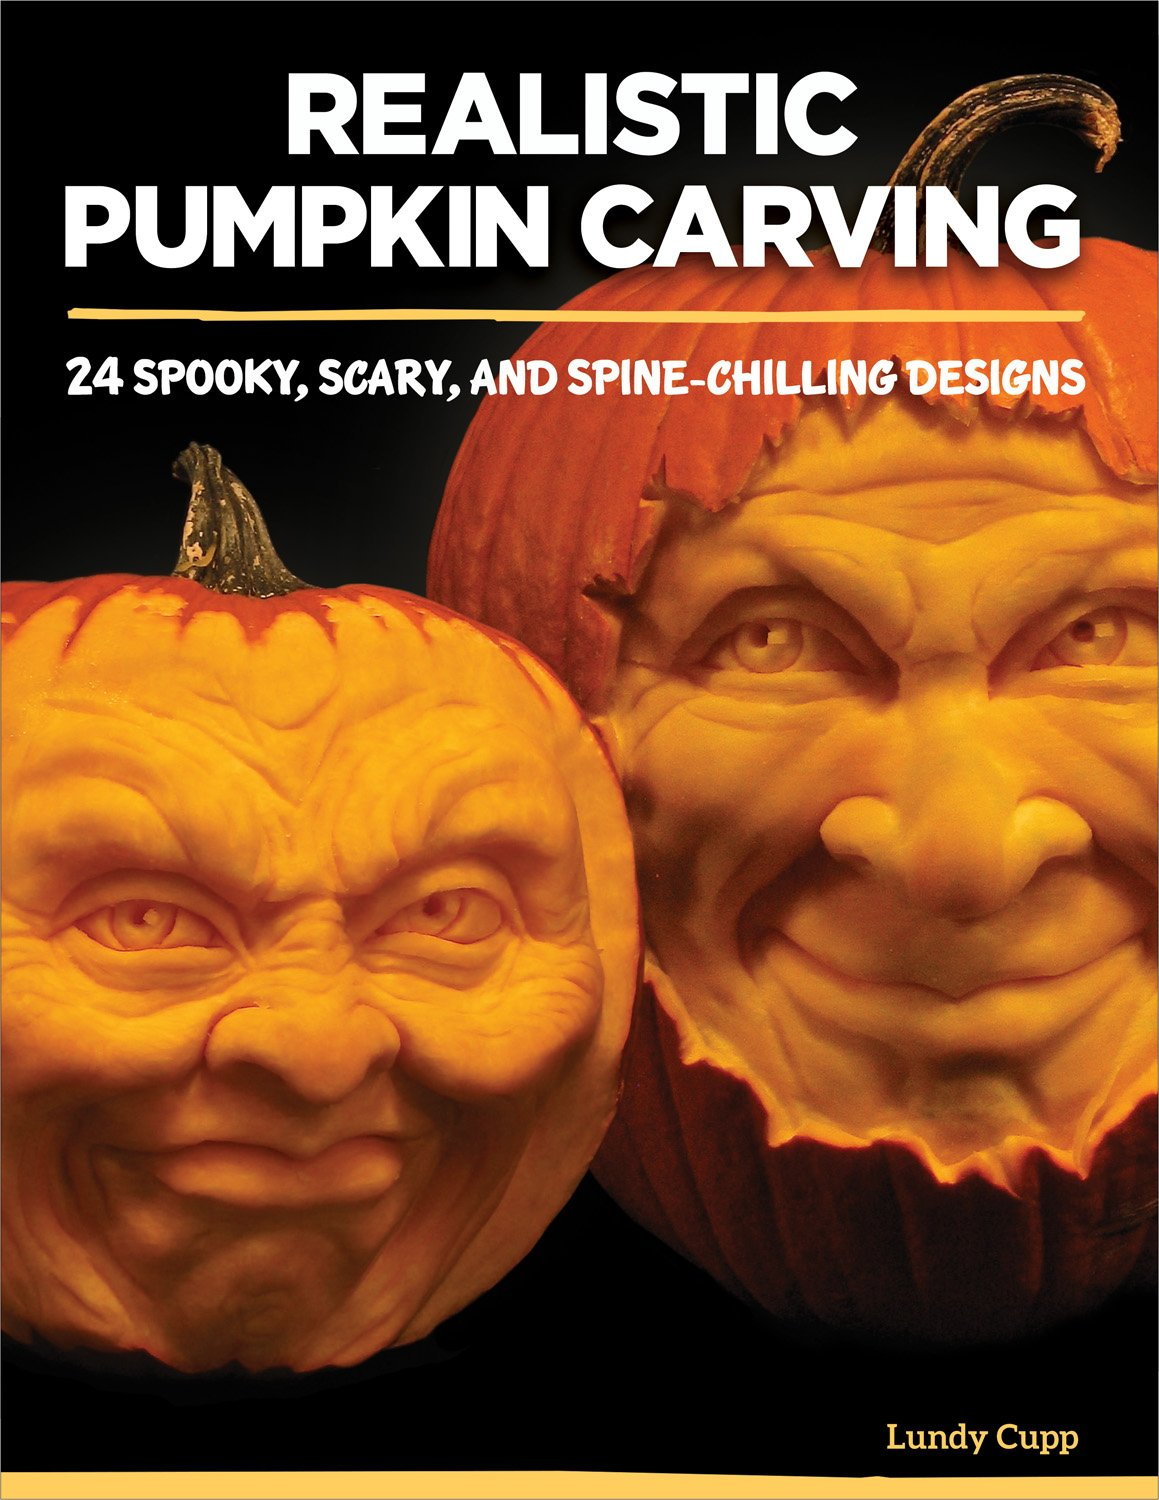 Realistic Pumpkin Carving 24 Spooky, Scary, and Spine